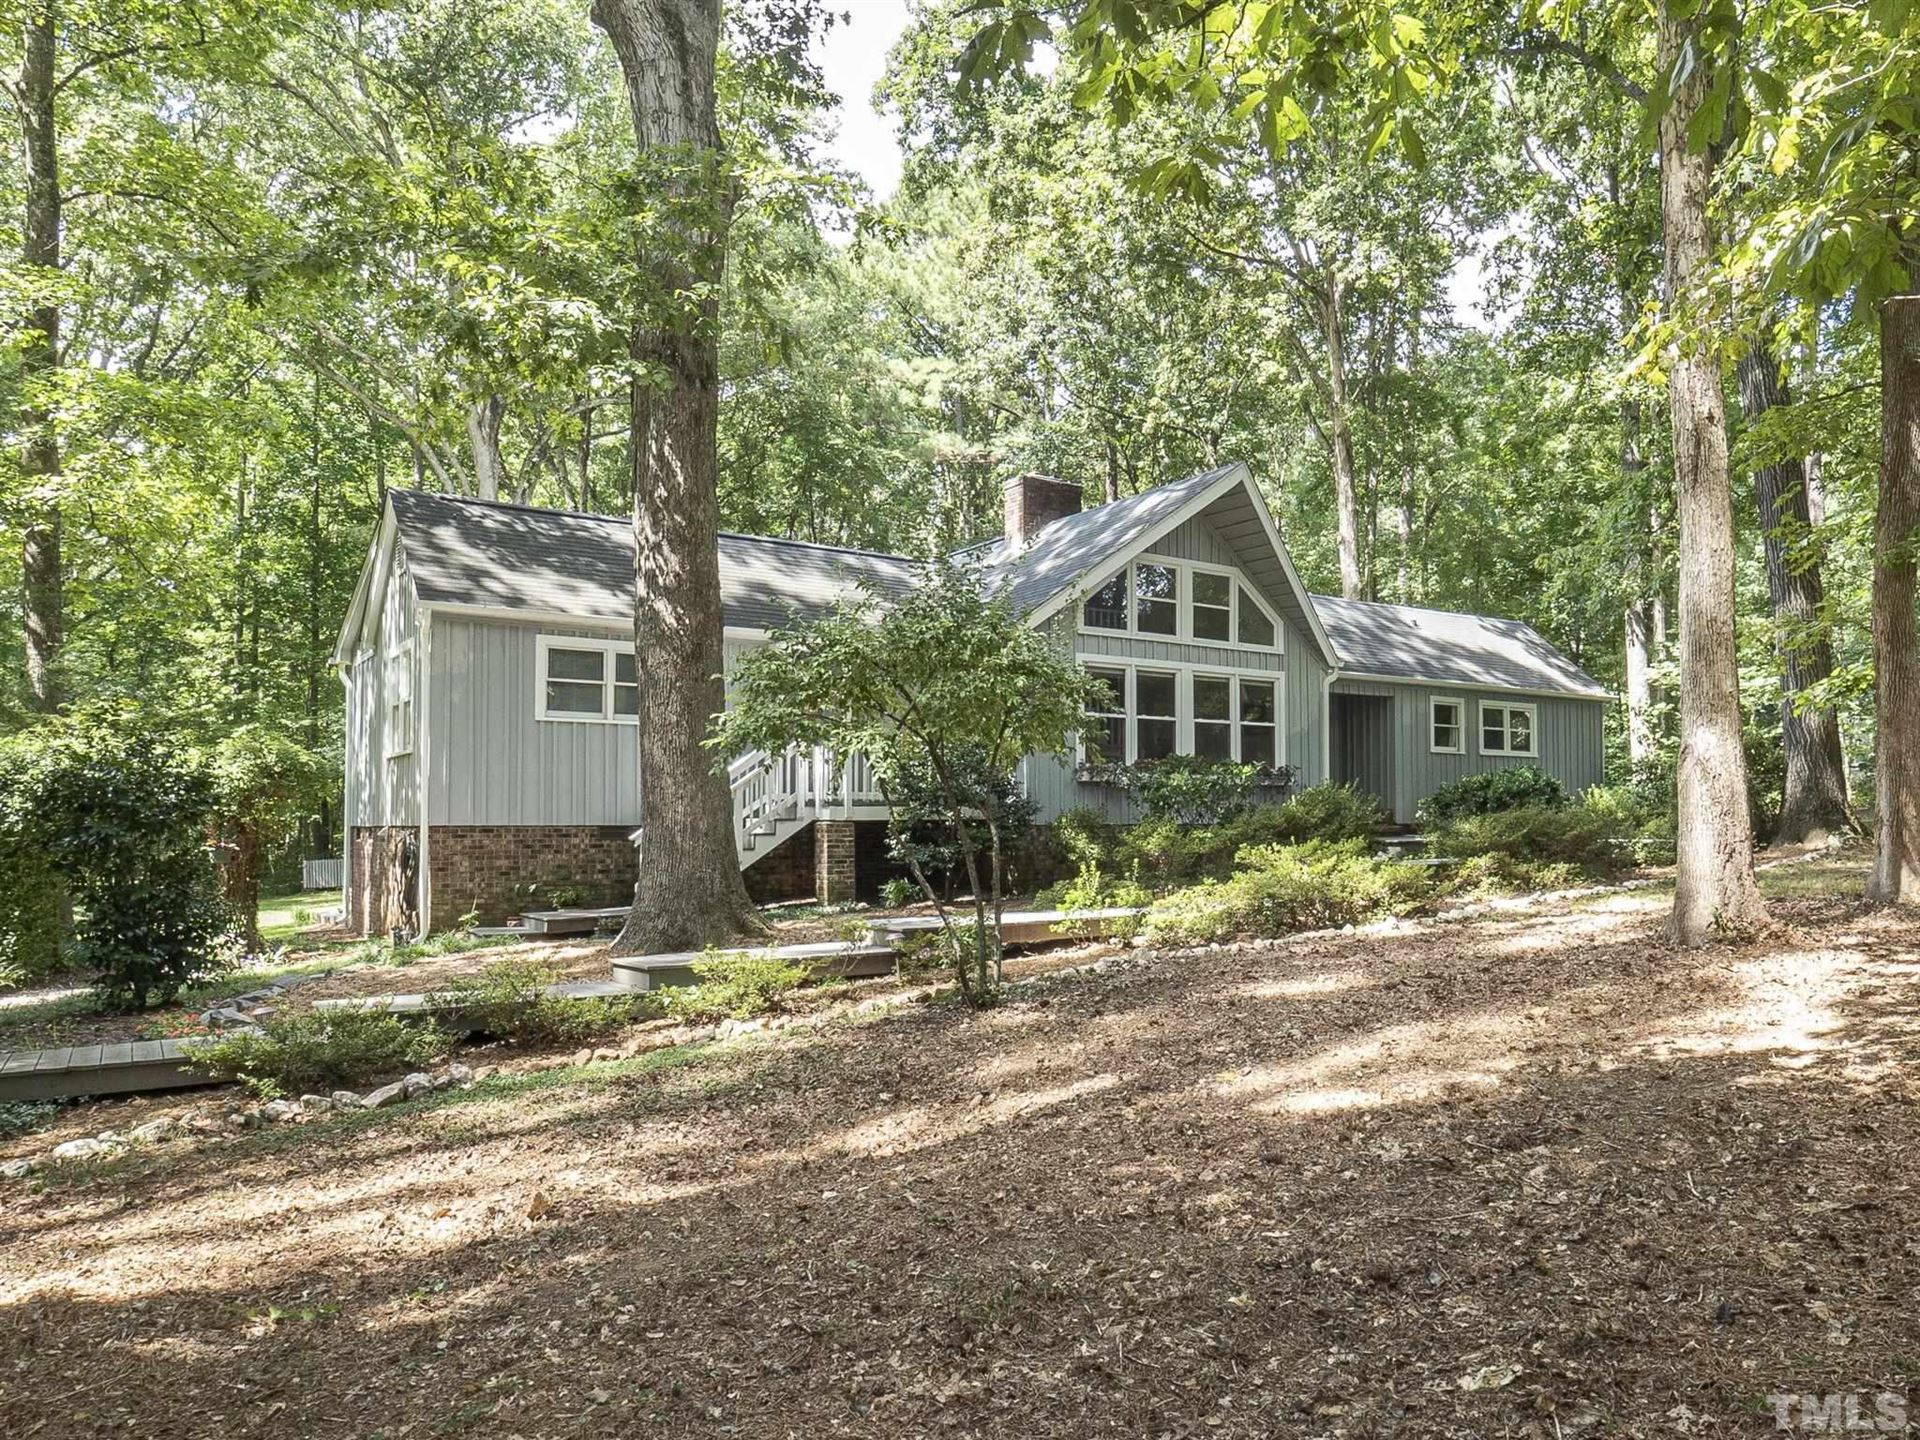 Photo of 5412 Amsterdam Place, Raleigh, NC 27606-9708 (MLS # 2408730)